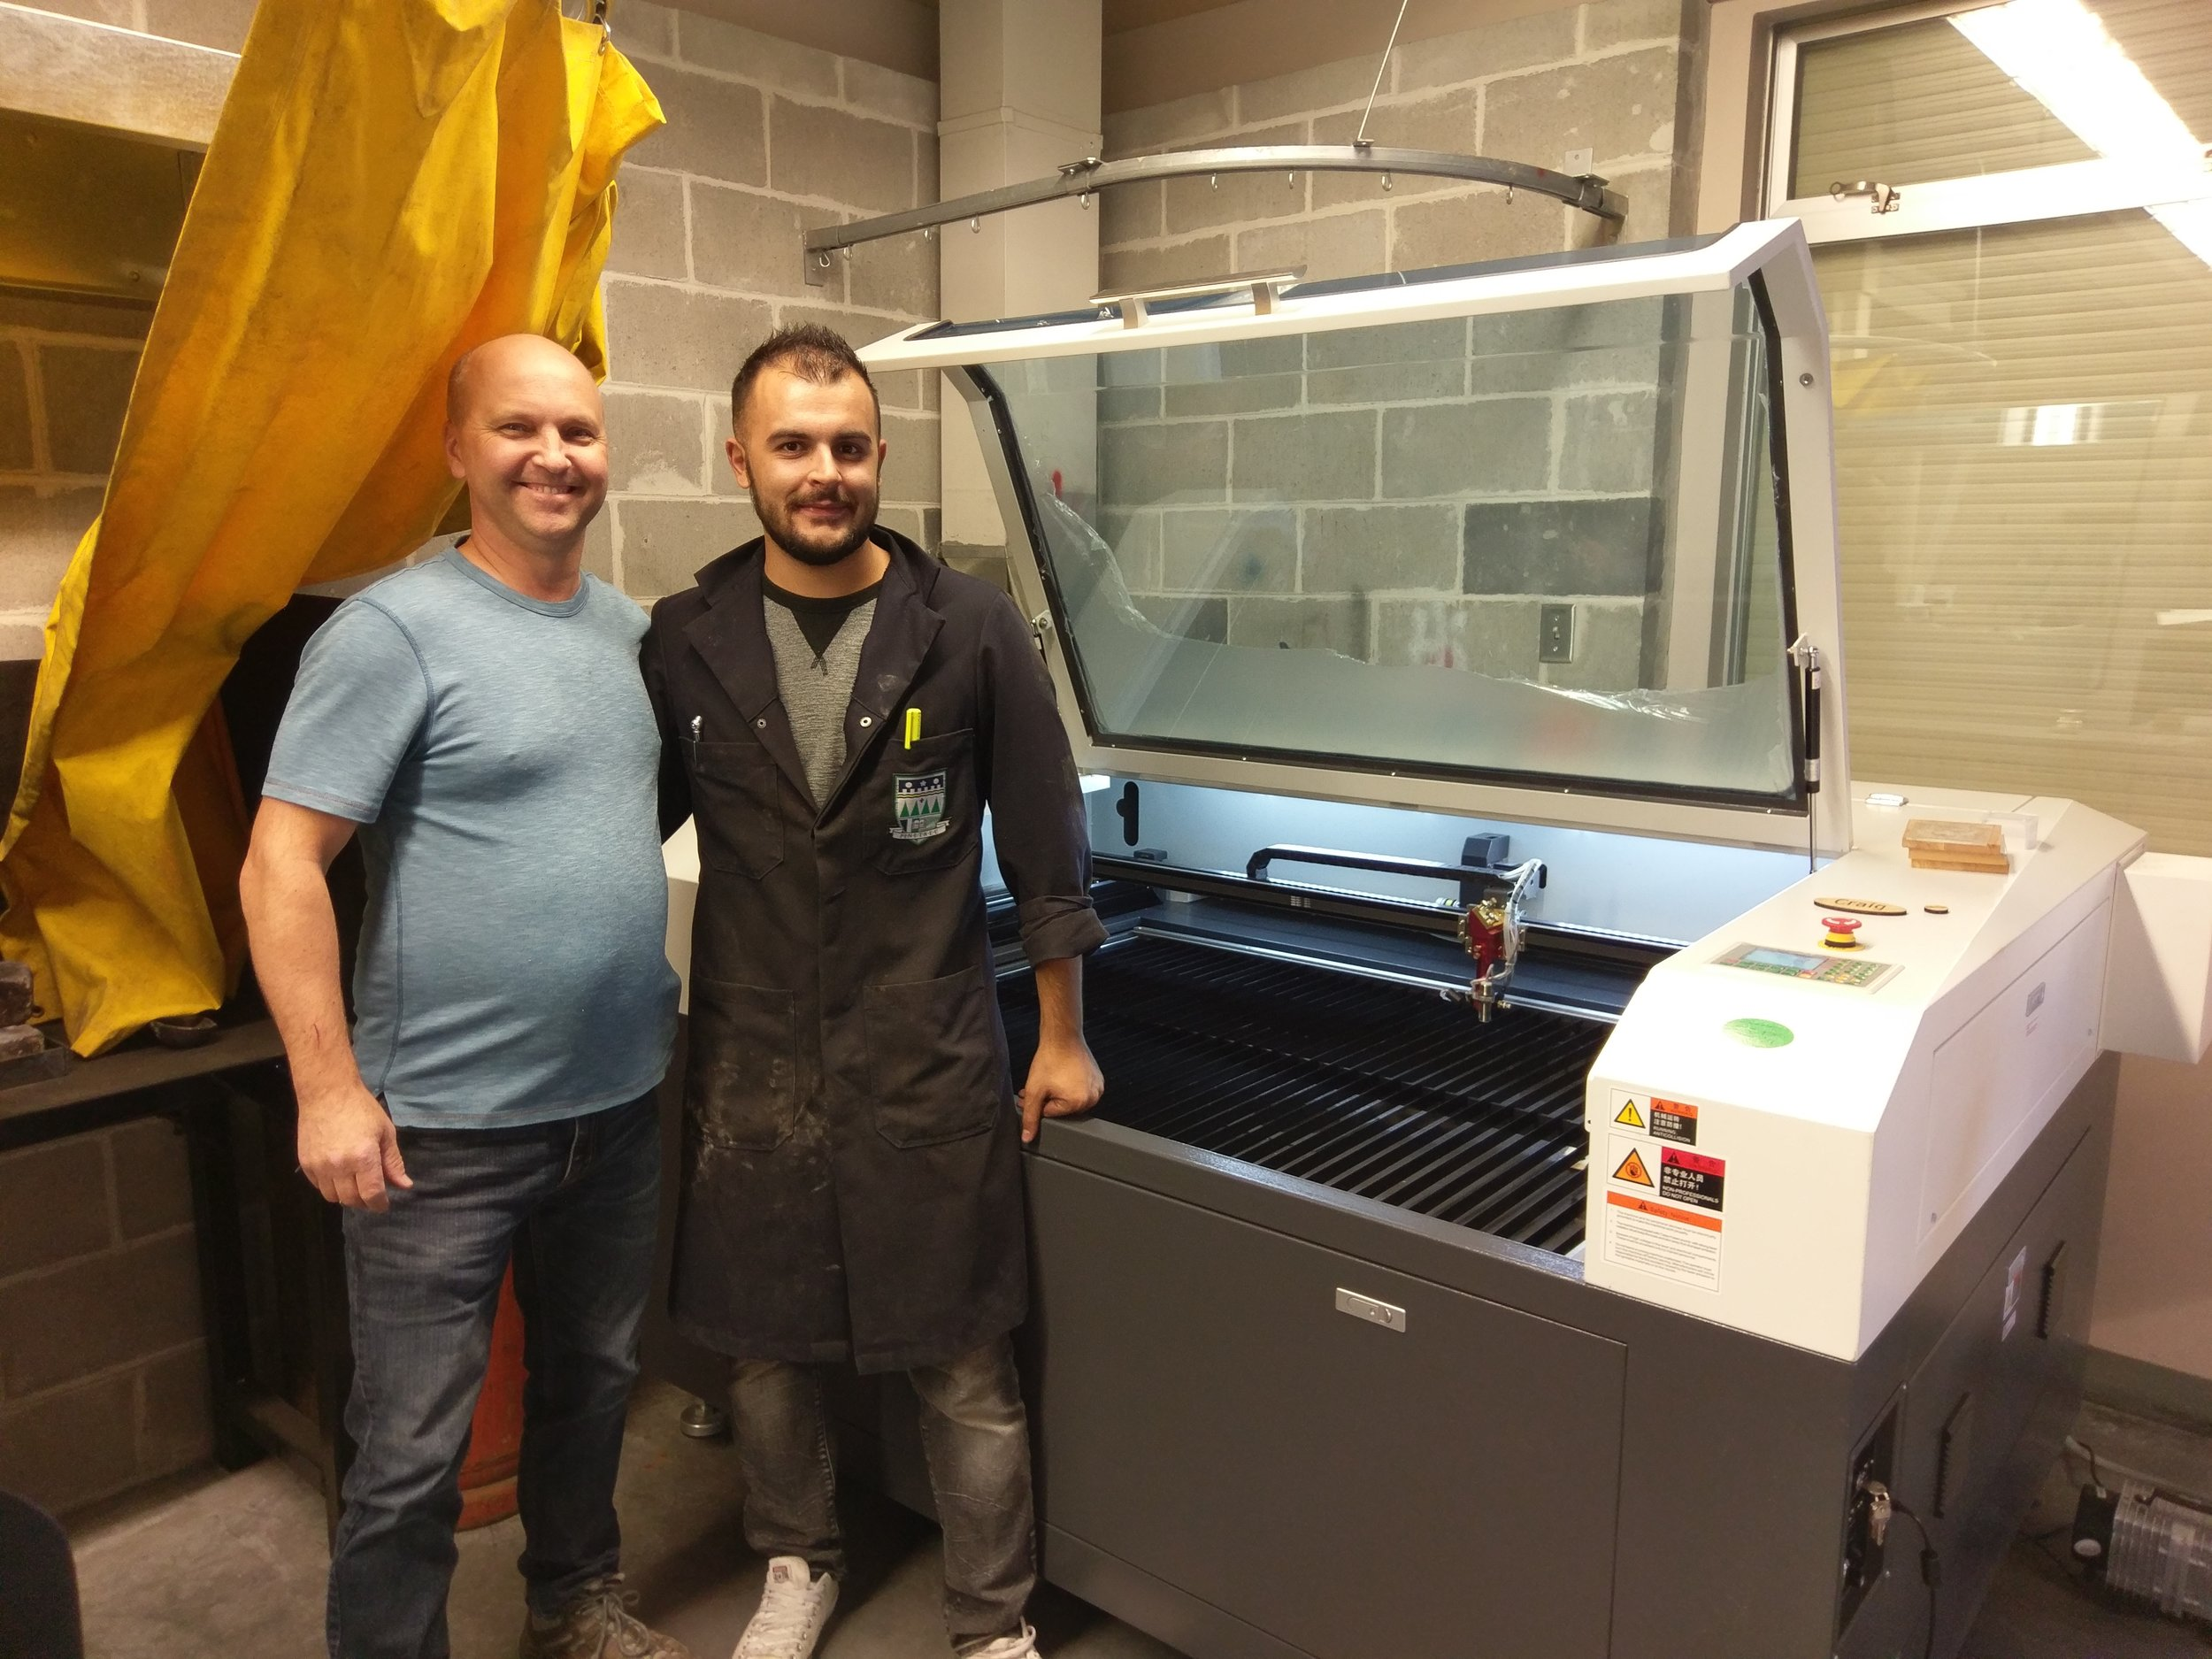 Pinetree secondary  - Machine: SP-13009S 100wattYear: 2017Business/Use: Teaching the next generation of students